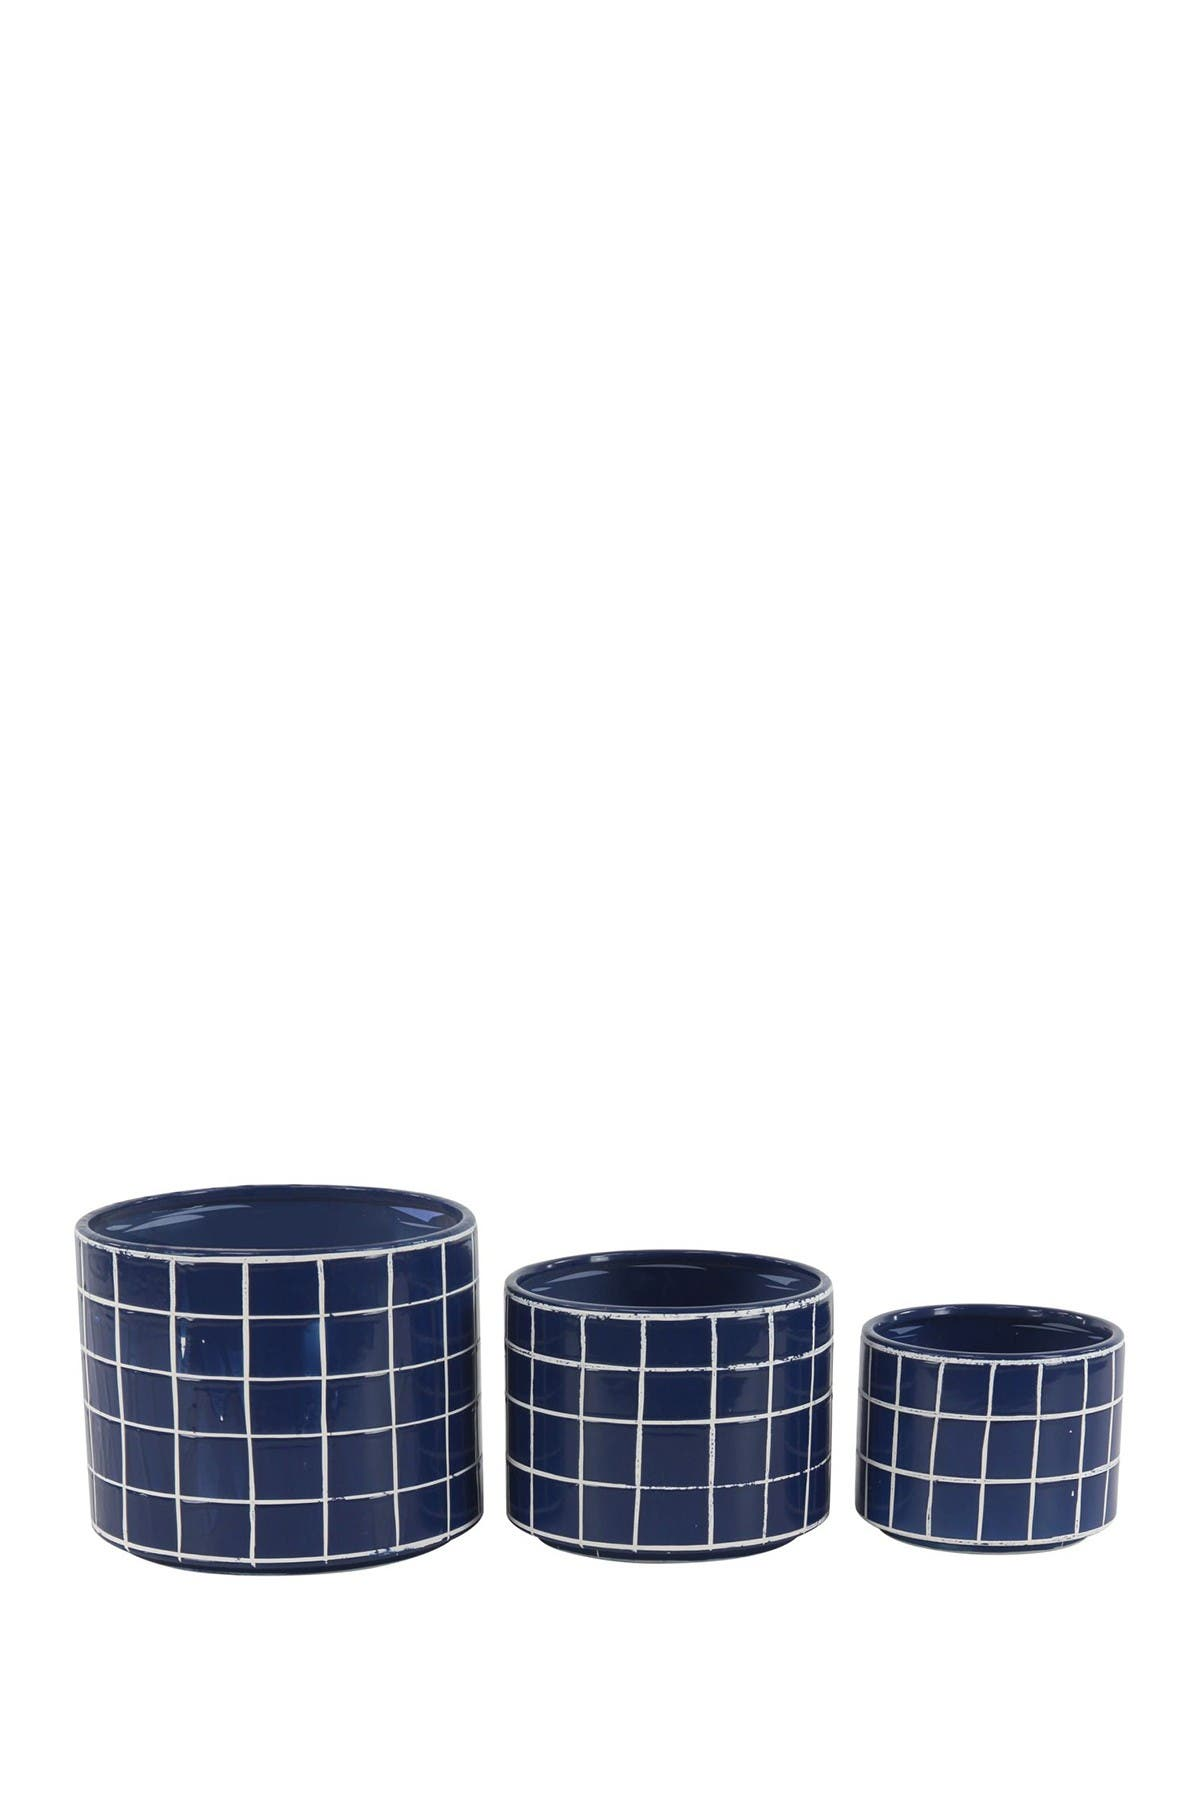 Image of Willow Row Blue Modern Cylindrical Ceramic Vase - Set of 3